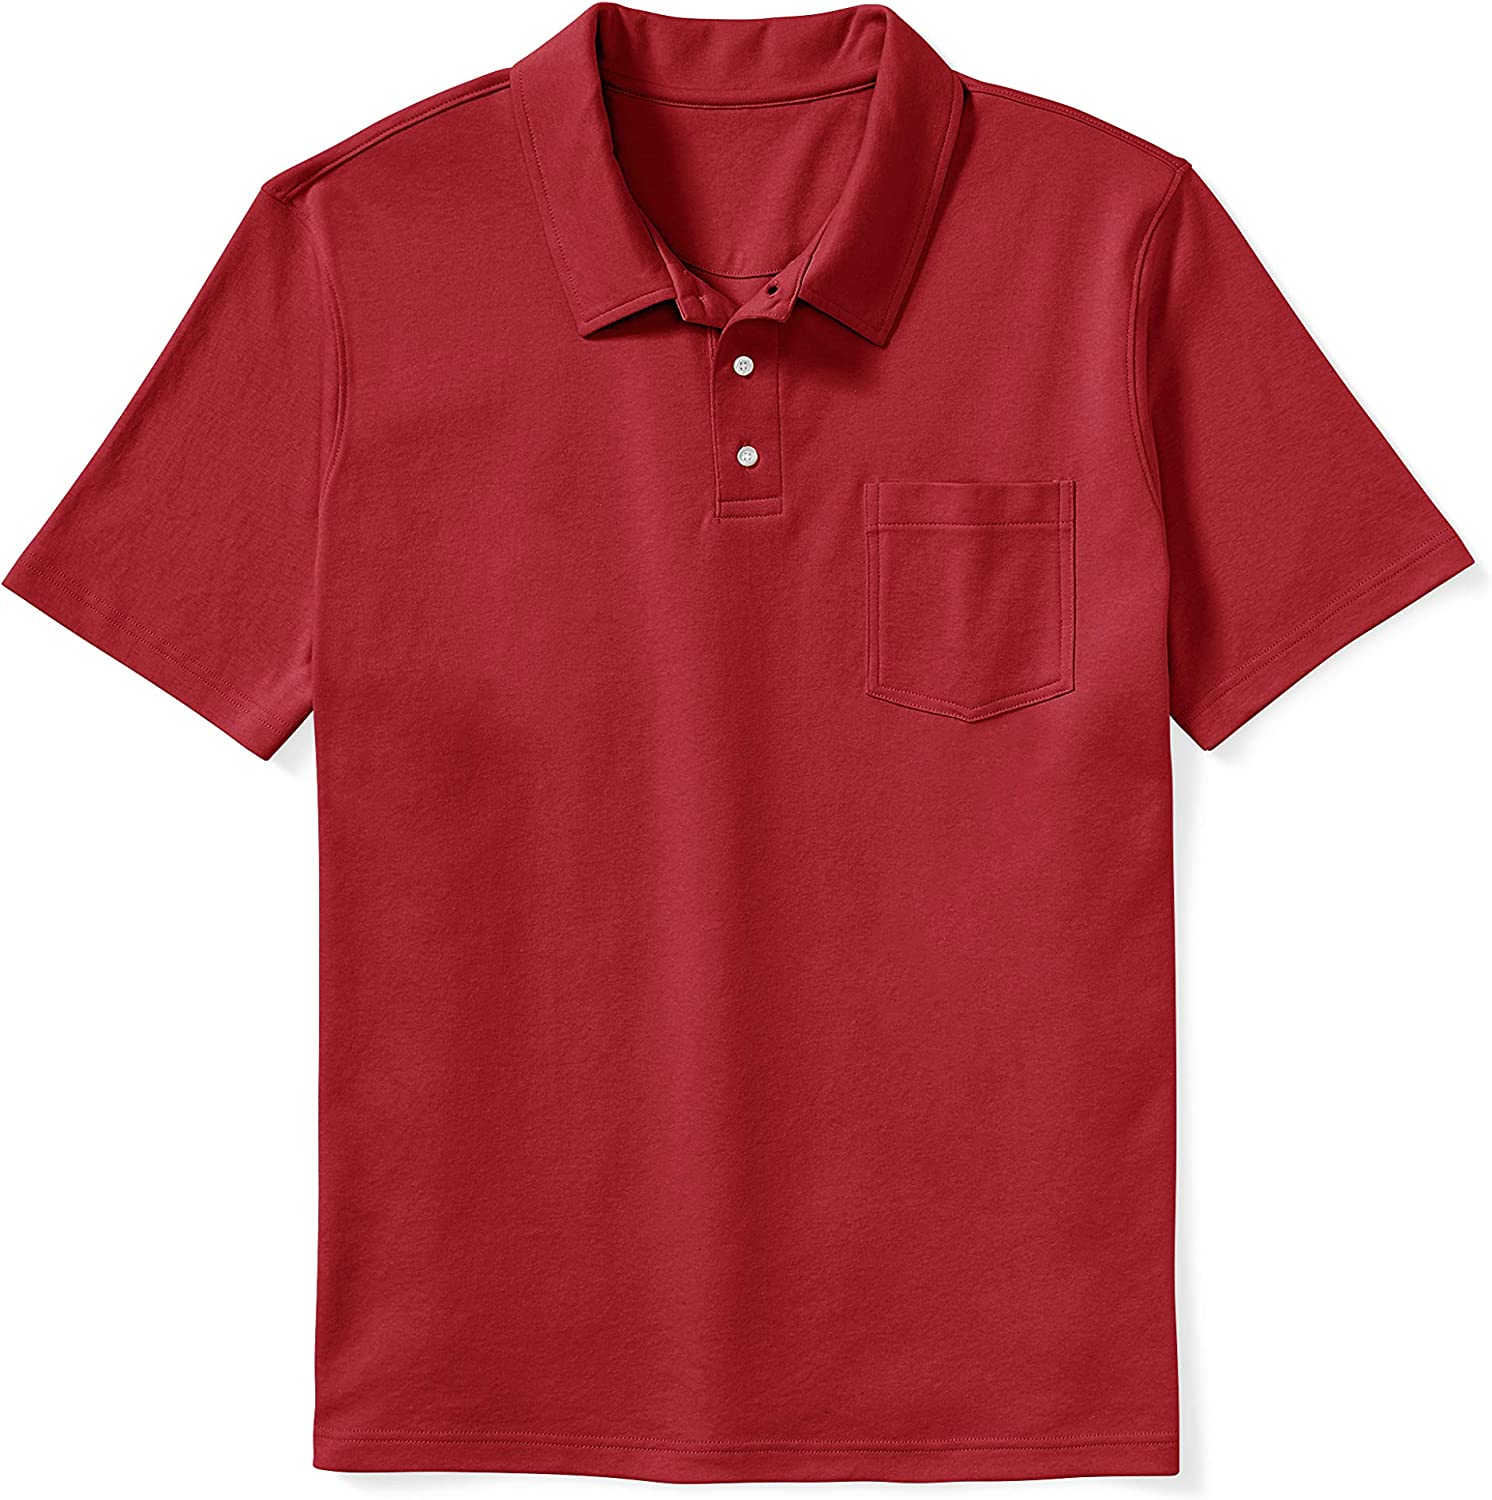 Amazon Essentials Men's Big & Tall Jersey Polo Shirt fit by DXL